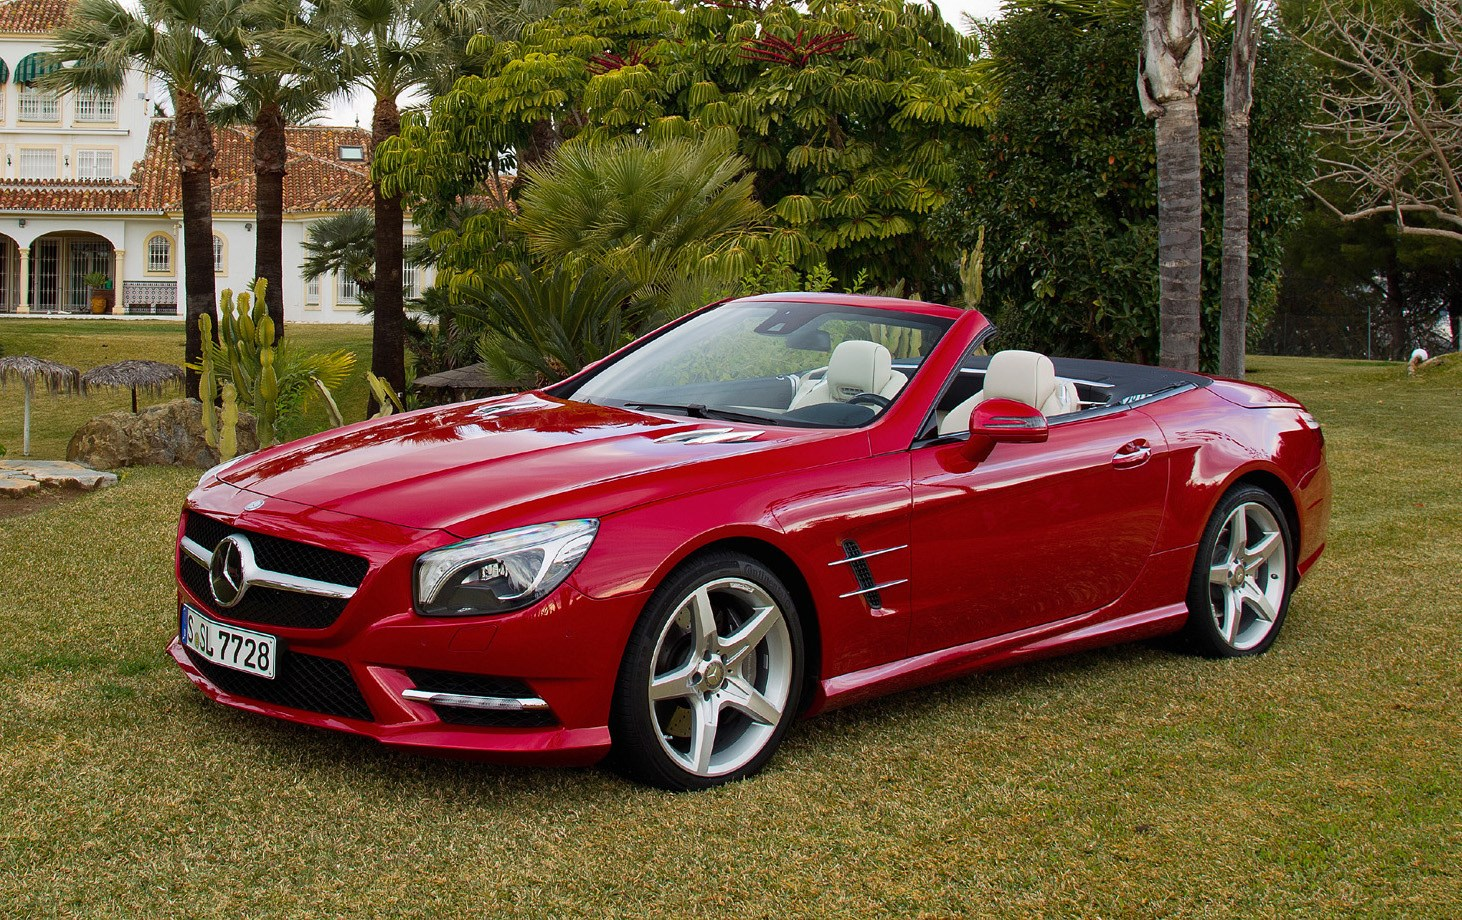 mercedes benz sl class convertible review 2012 parkers. Black Bedroom Furniture Sets. Home Design Ideas